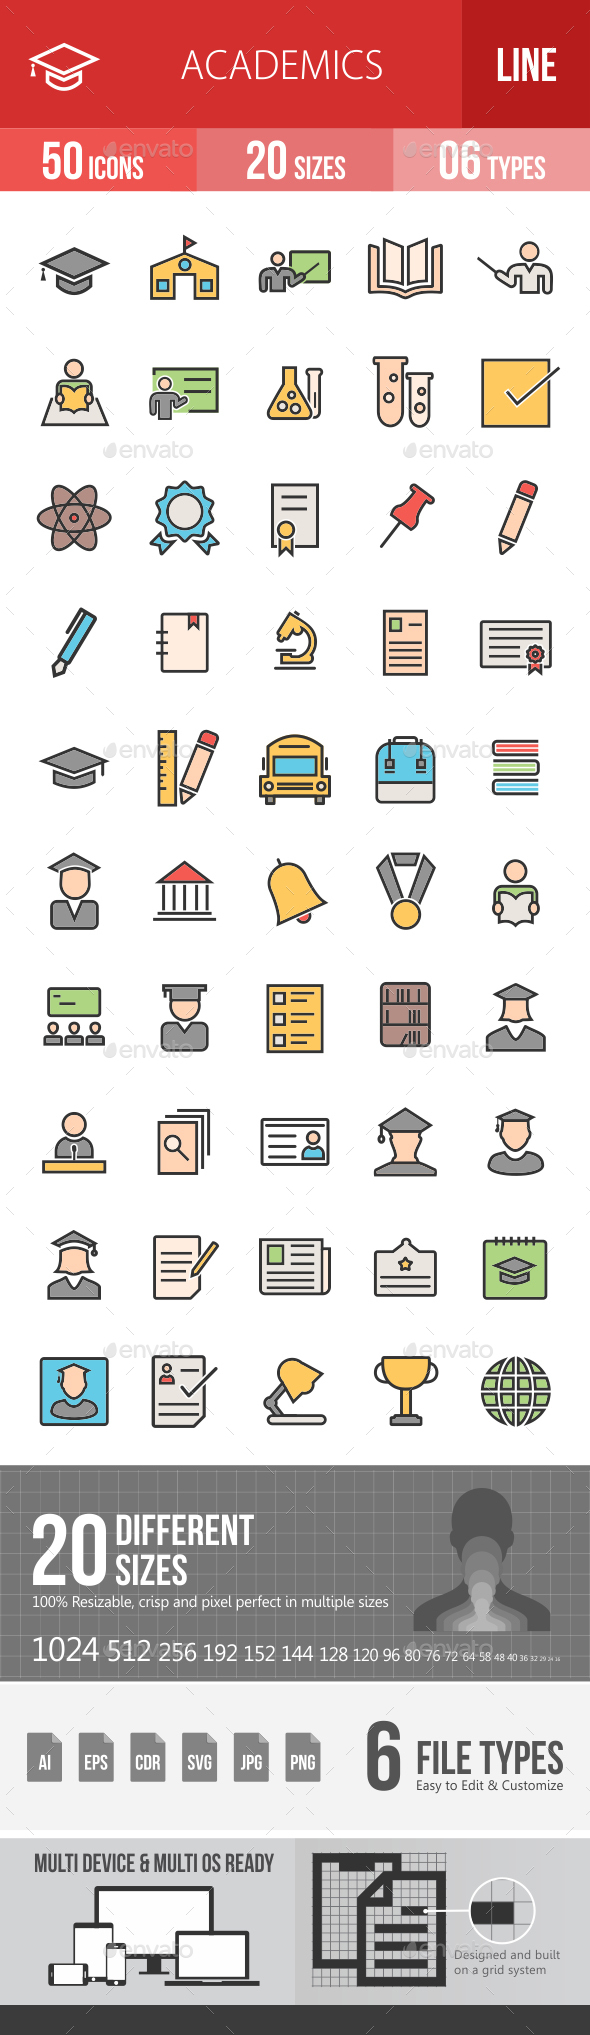 Academics Filled Line Icons - Icons